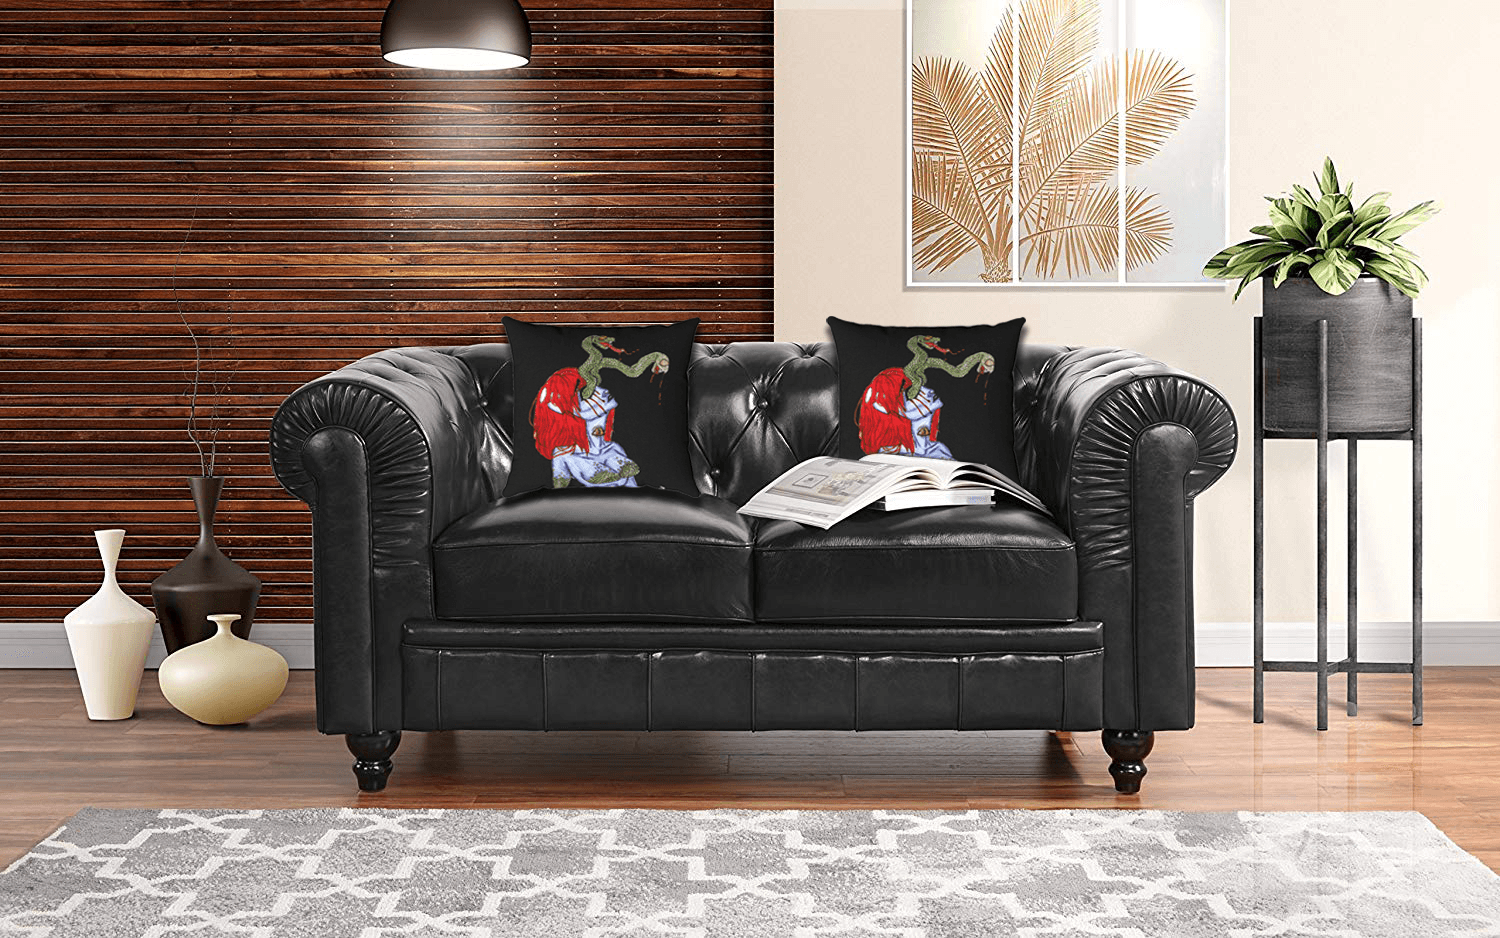 Scales Accent Pillow  by Ayanna Ali paired with  Black Divano Roma Classic Scroll Arm Real Leather Match Chesterfield Love Seat